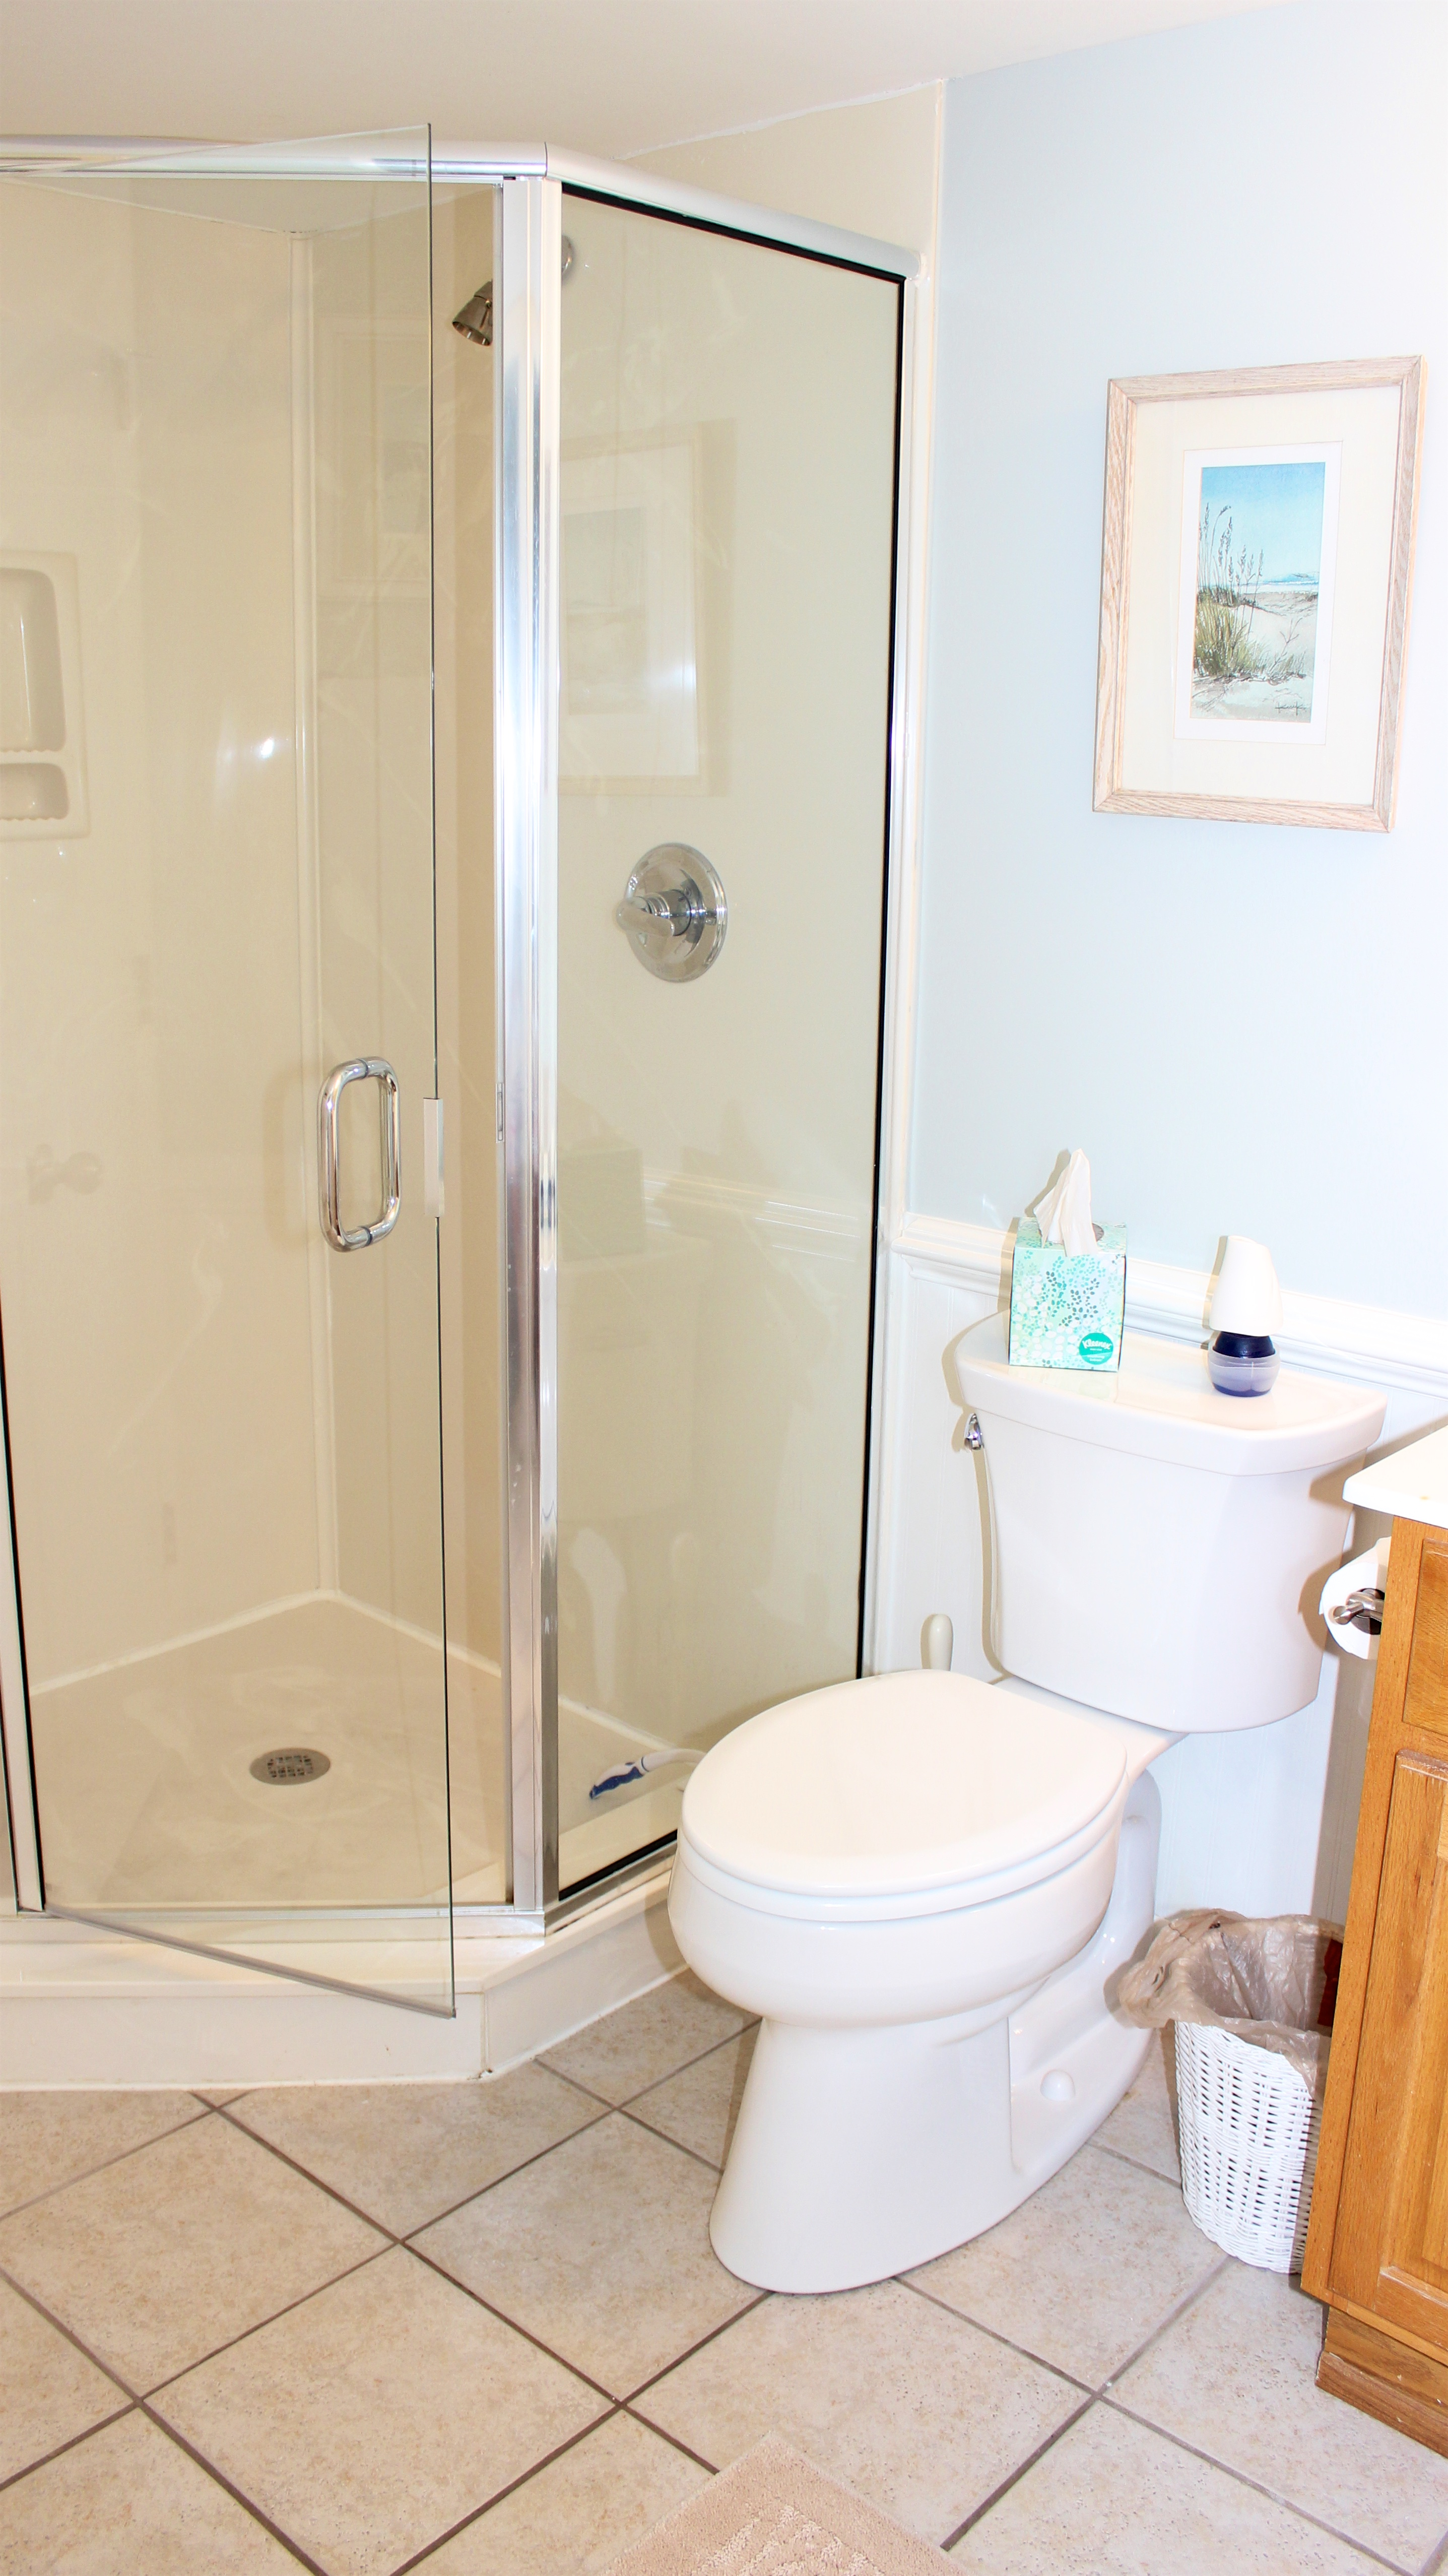 The bathroom features a walk in shower.